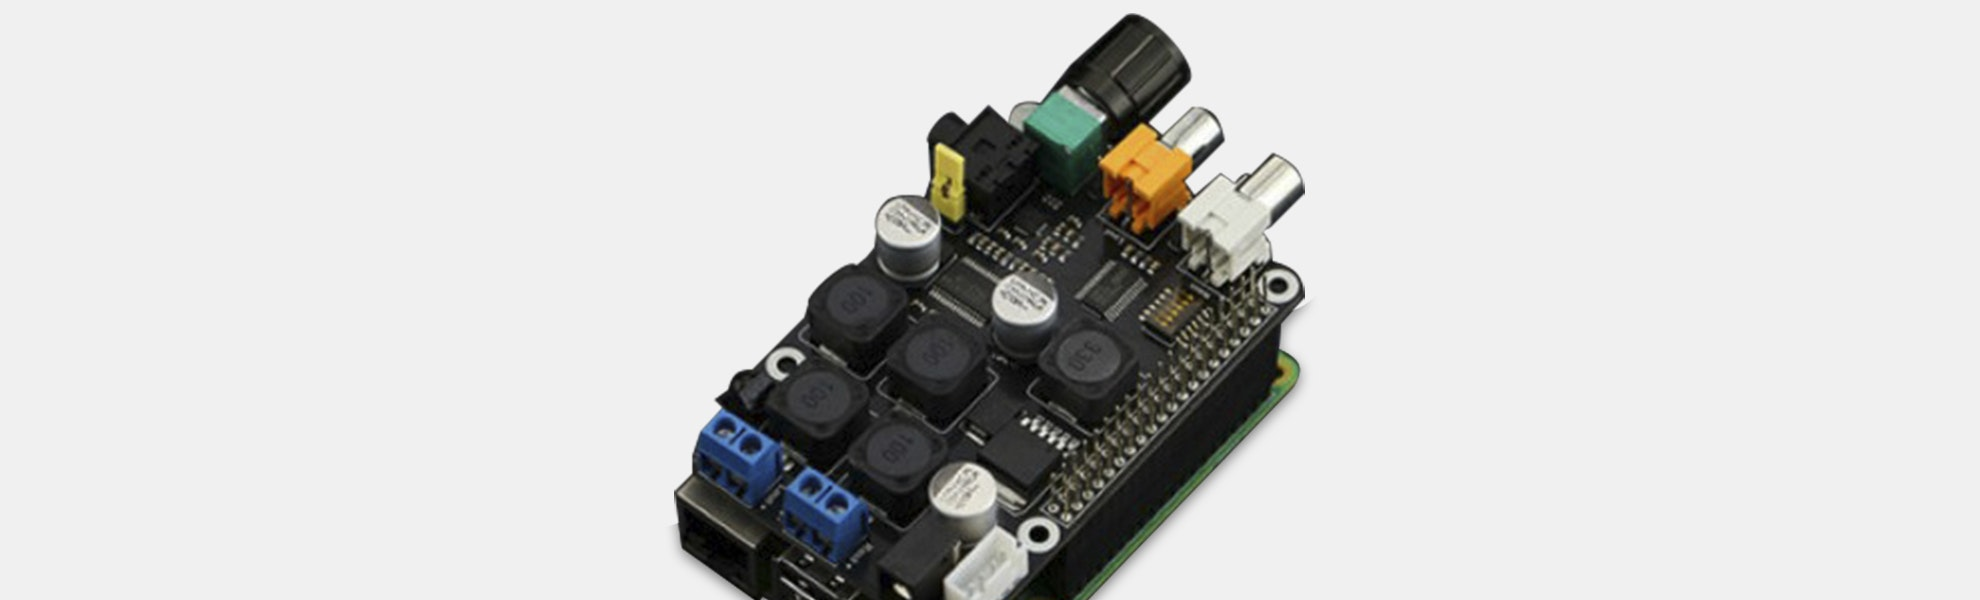 DFRobot Audio Expansion Shields for Raspberry Pi